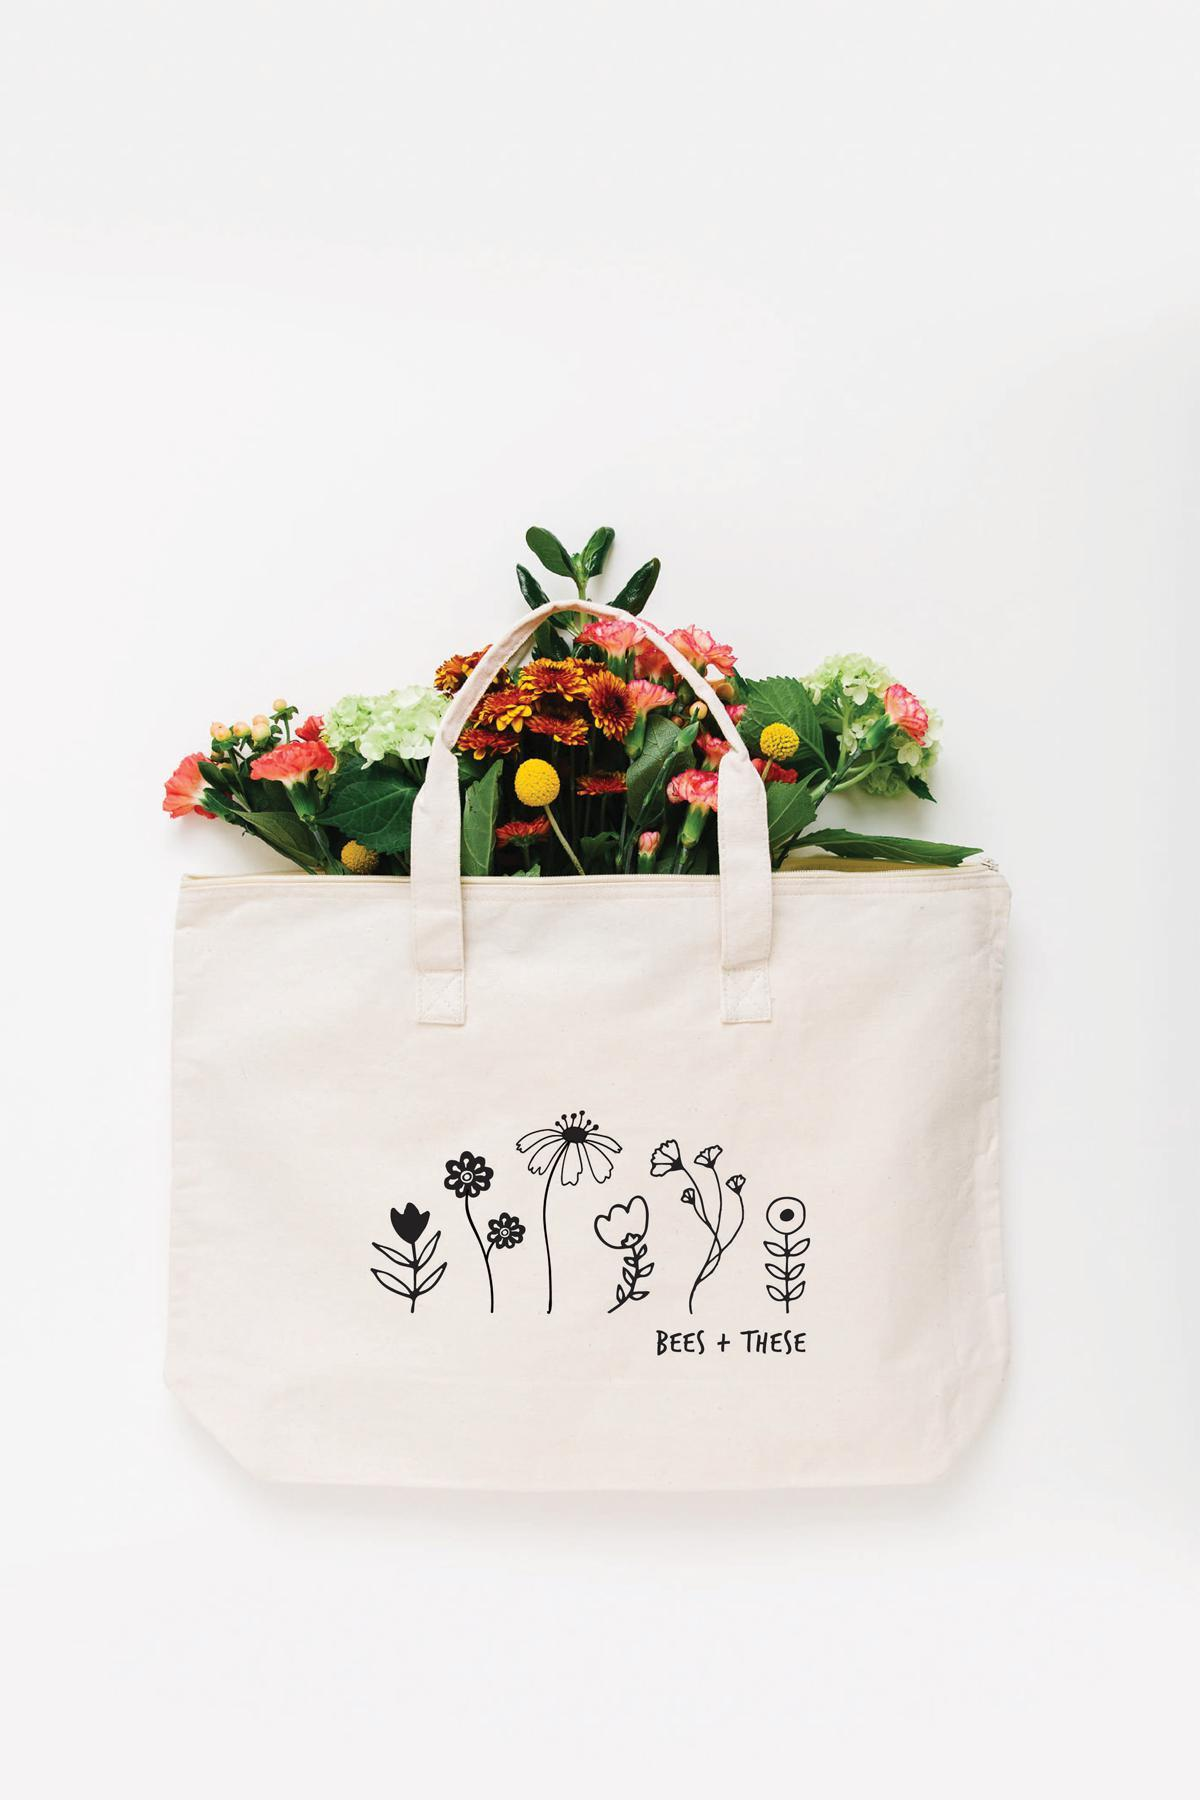 Bees + These Tote Bag - Large